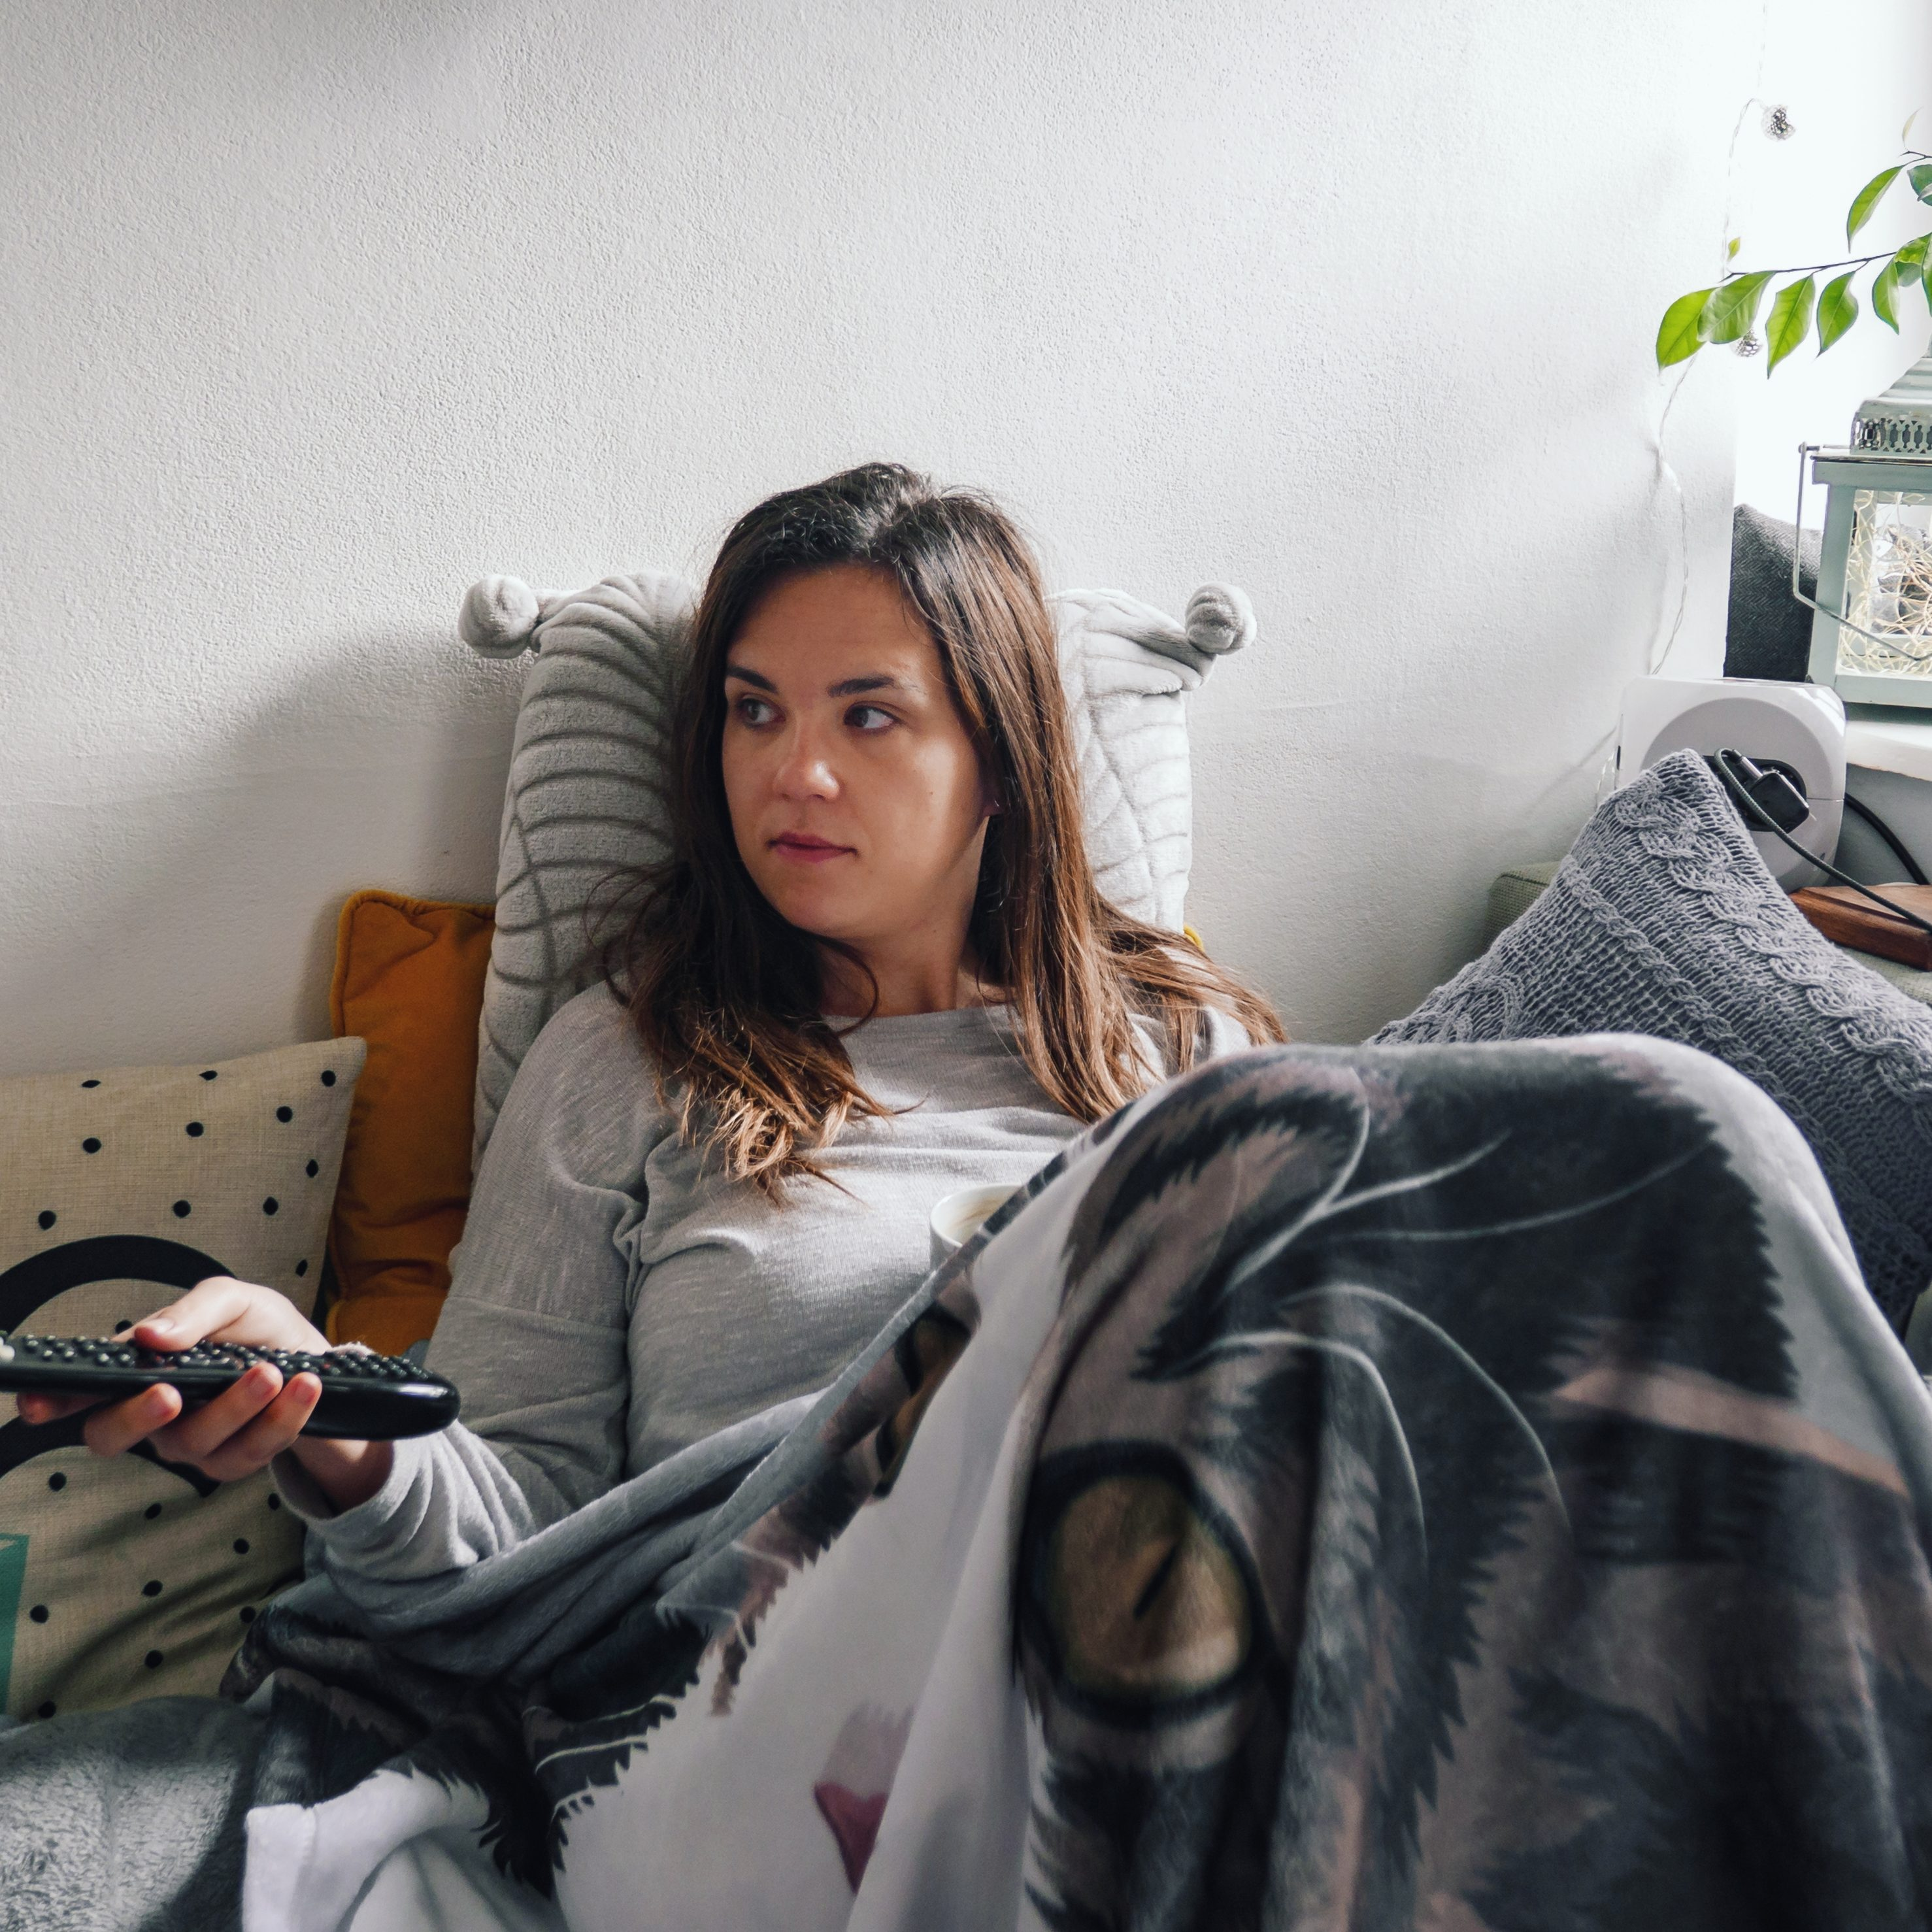 young-woman-watching-tv-woman-on-a-couch-sofa-cozy-bundled-up-blanket-flat-apartment-person-rent_t20_vRmNeG